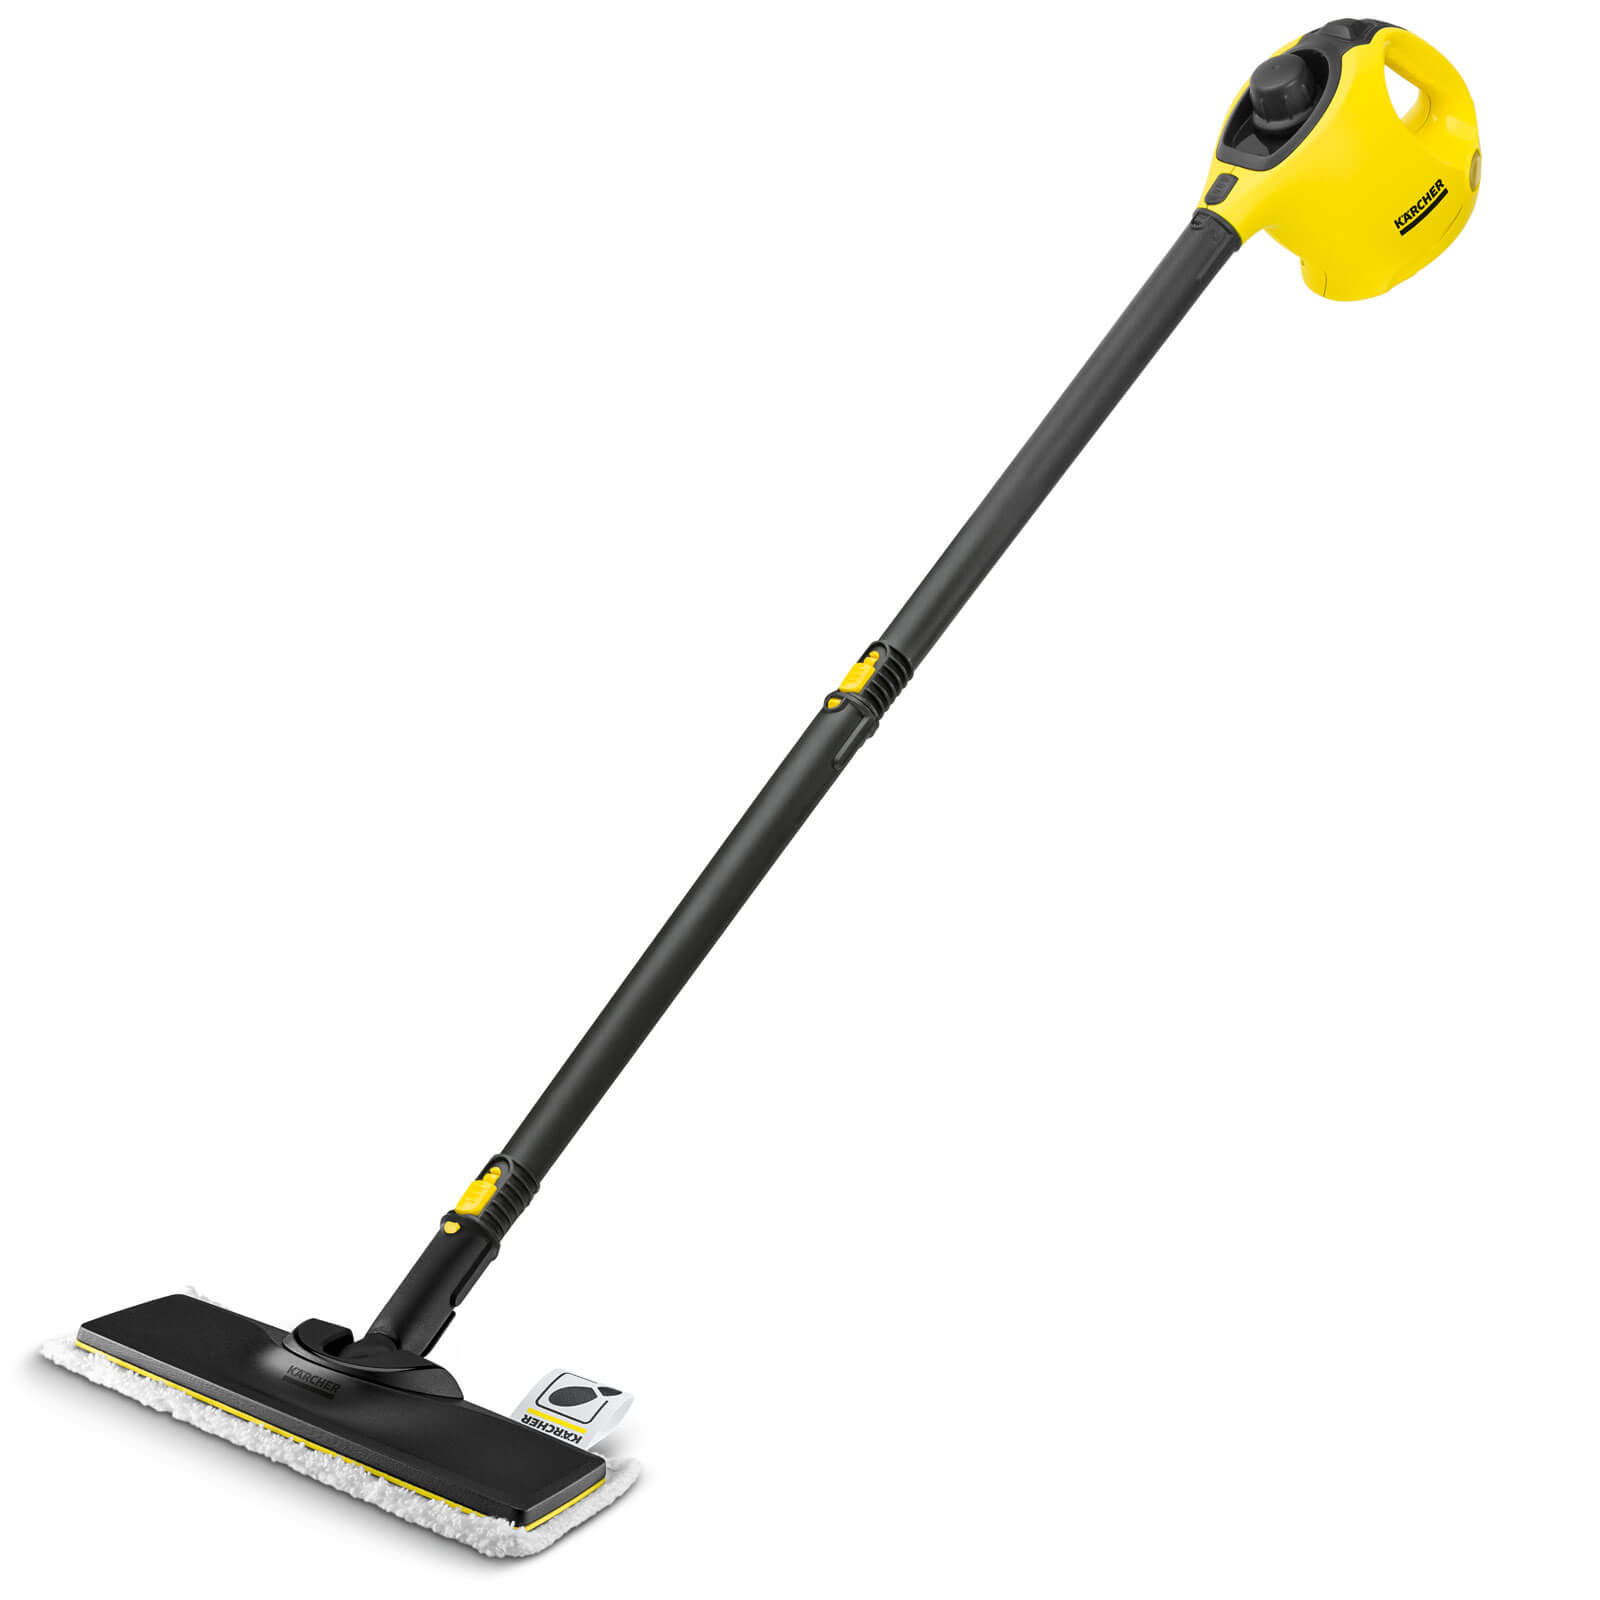 Karcher SC 1 EASYFIX Steam Cleaner and Mop 240v